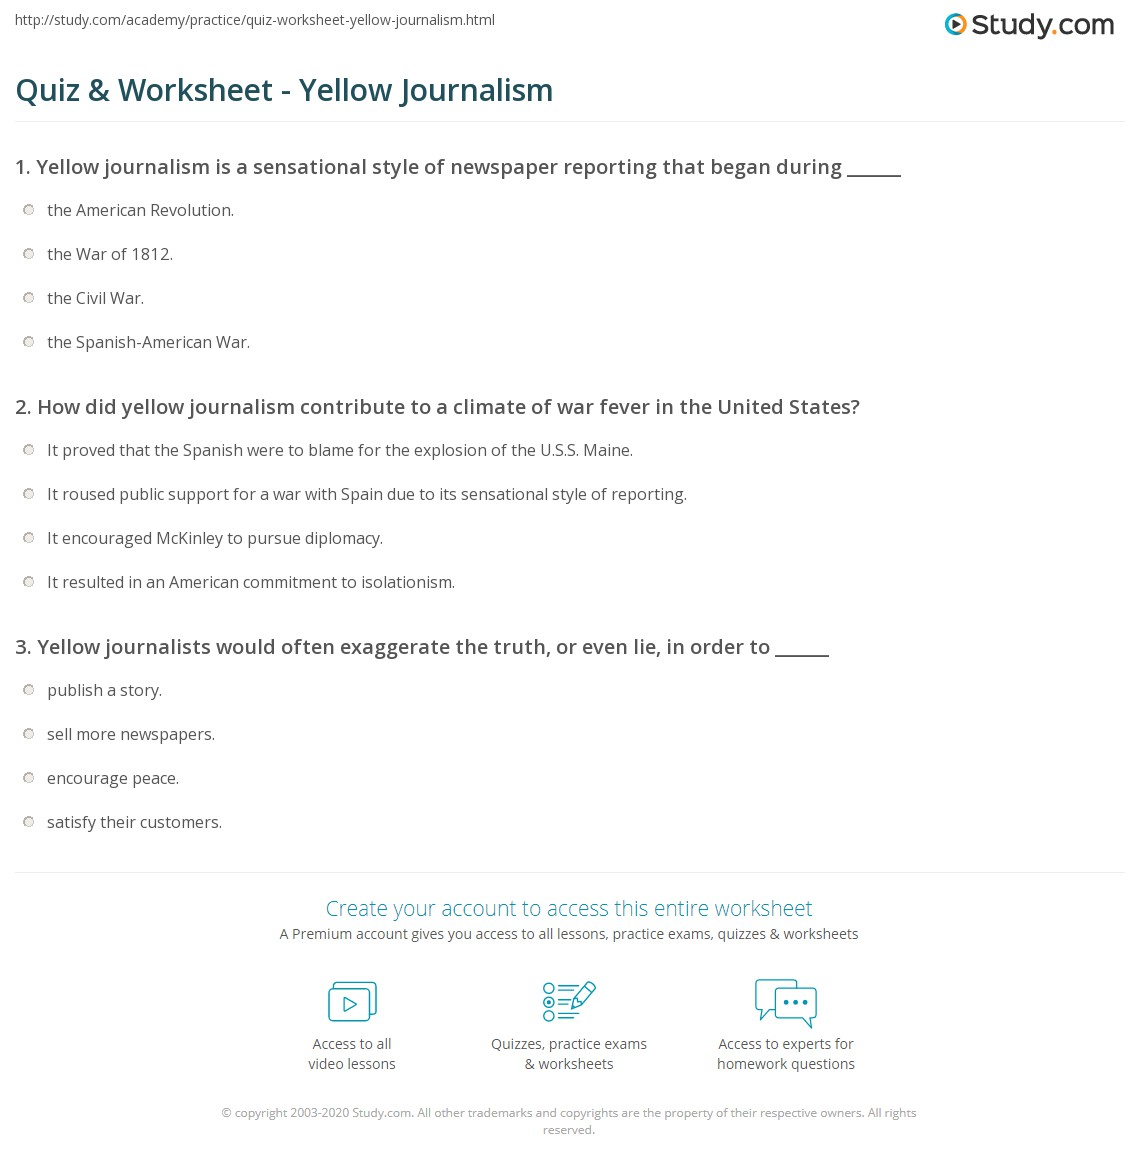 quiz worksheet yellow journalism. Black Bedroom Furniture Sets. Home Design Ideas